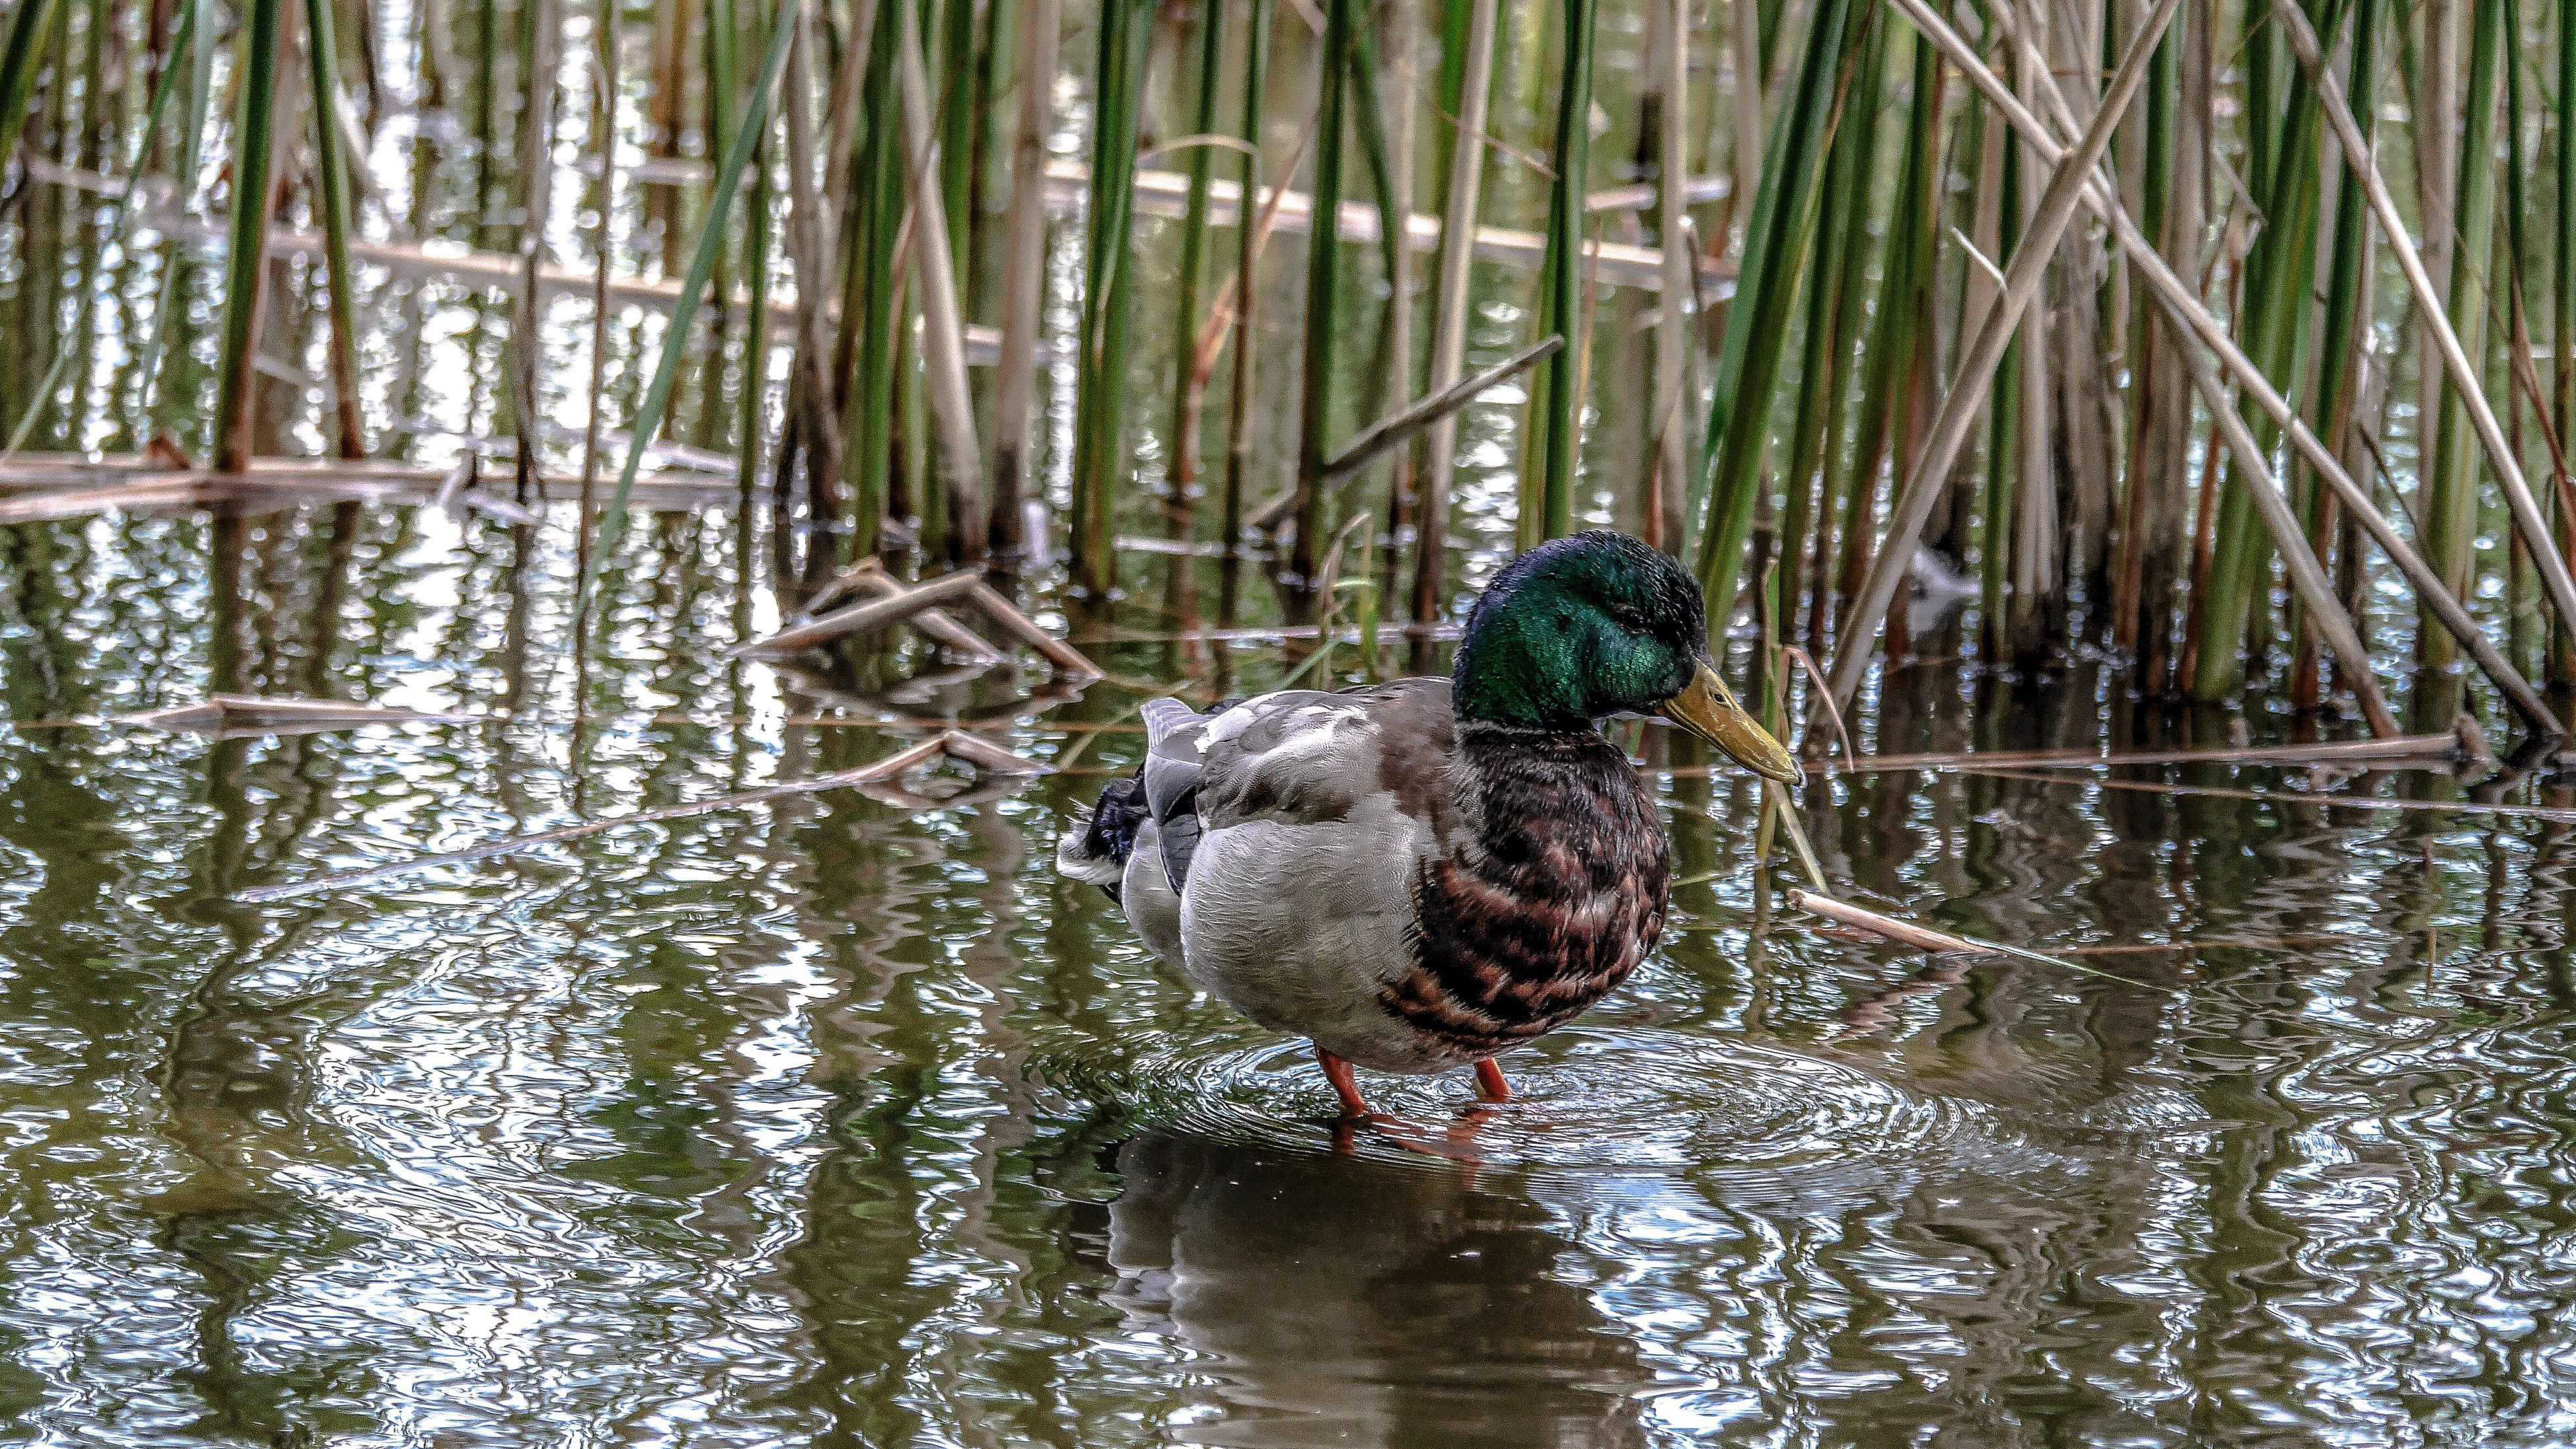 animals in the wild, animal themes, duck, water, lake, bird, nature, animal wildlife, one animal, reflection, swimming, water bird, mandarin duck, day, no people, outdoors, beauty in nature